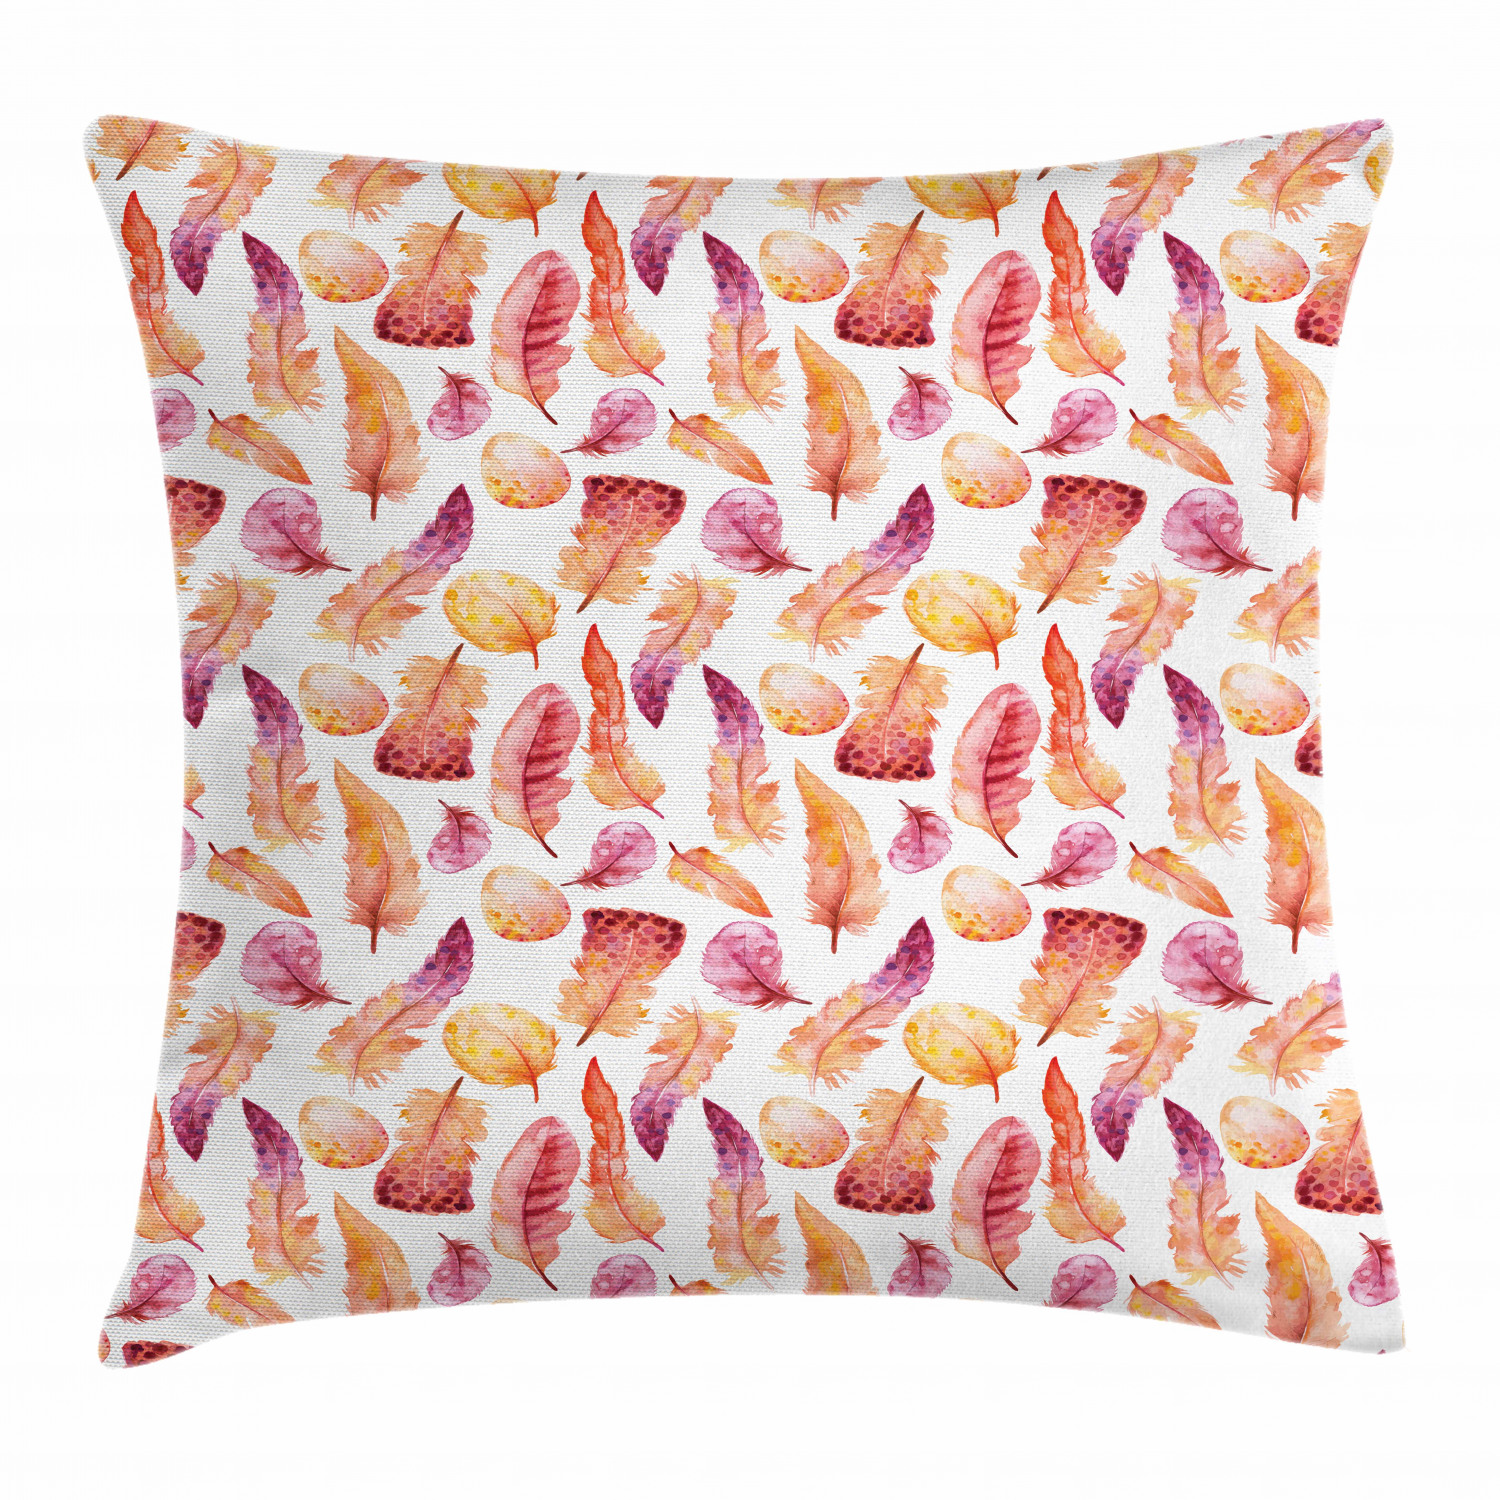 Ethnic Feather Throw Pillow Cases Cushion Covers Home Decor 8 Sizes by Ambesonne